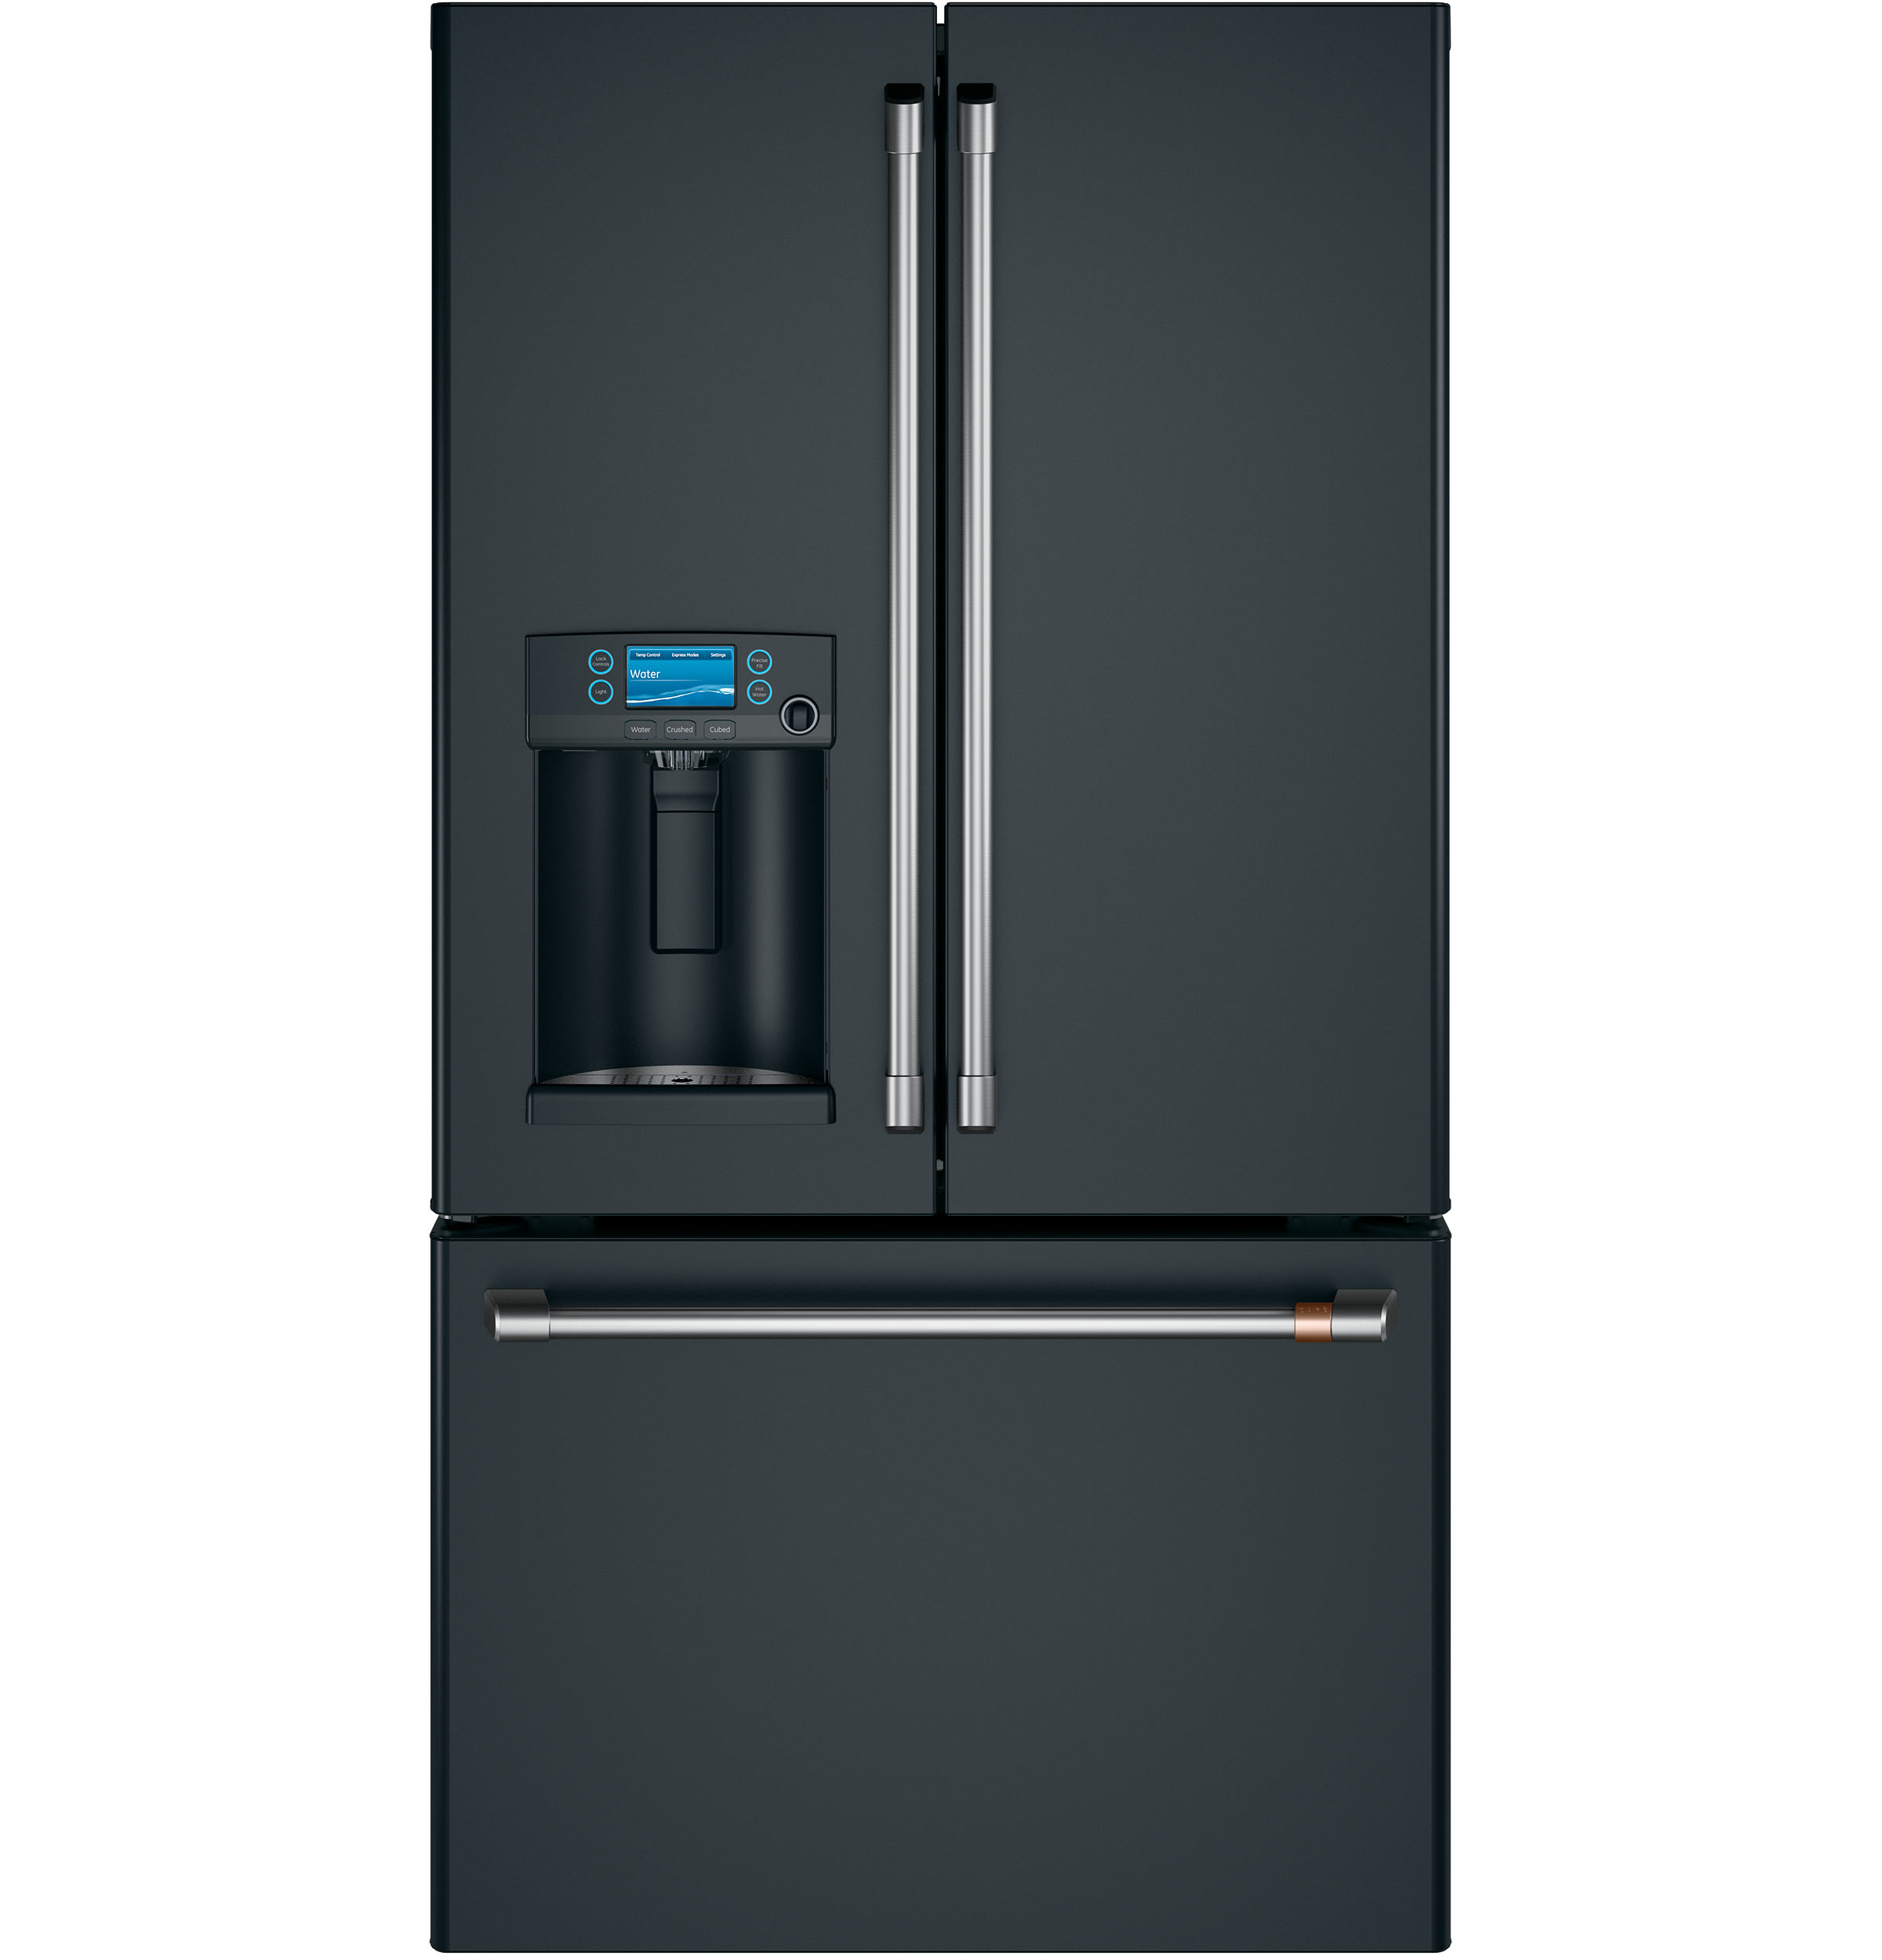 Café™ ENERGY STAR® 22.2 Cu. Ft. Counter-Depth French-Door Refrigerator with Hot Water Dispenser